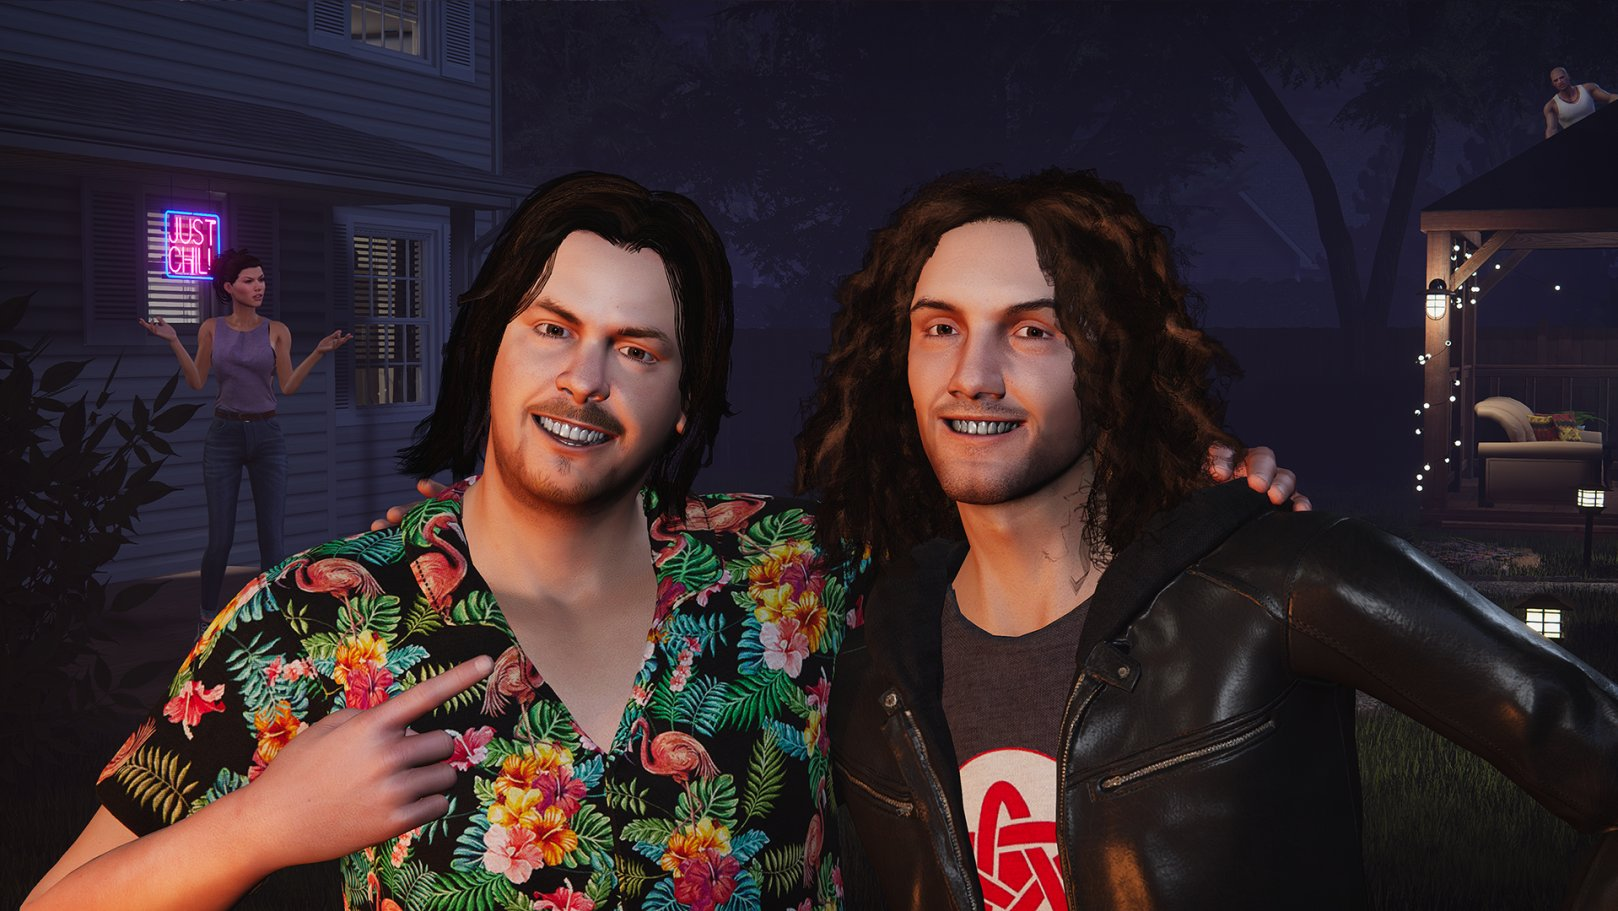 The Game Grumps Duo Arin and Dan Bring Their Notorious Hi-jinx to 'House Party' With a Content Release Happening Tuesday, March 24th